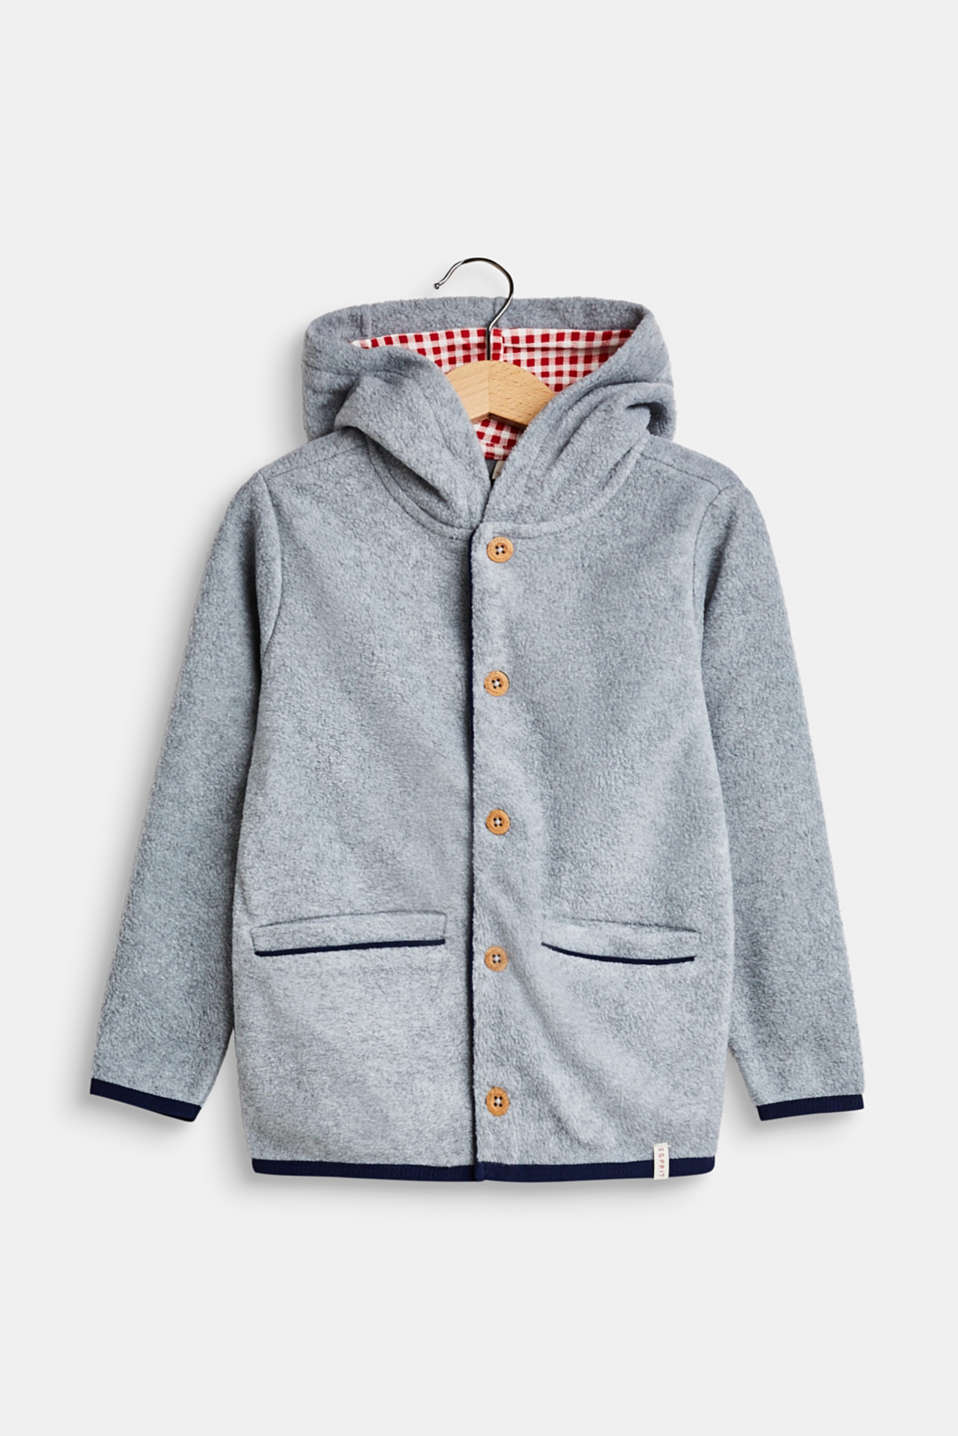 Esprit Fleece jacket with a hood and checked lining at our